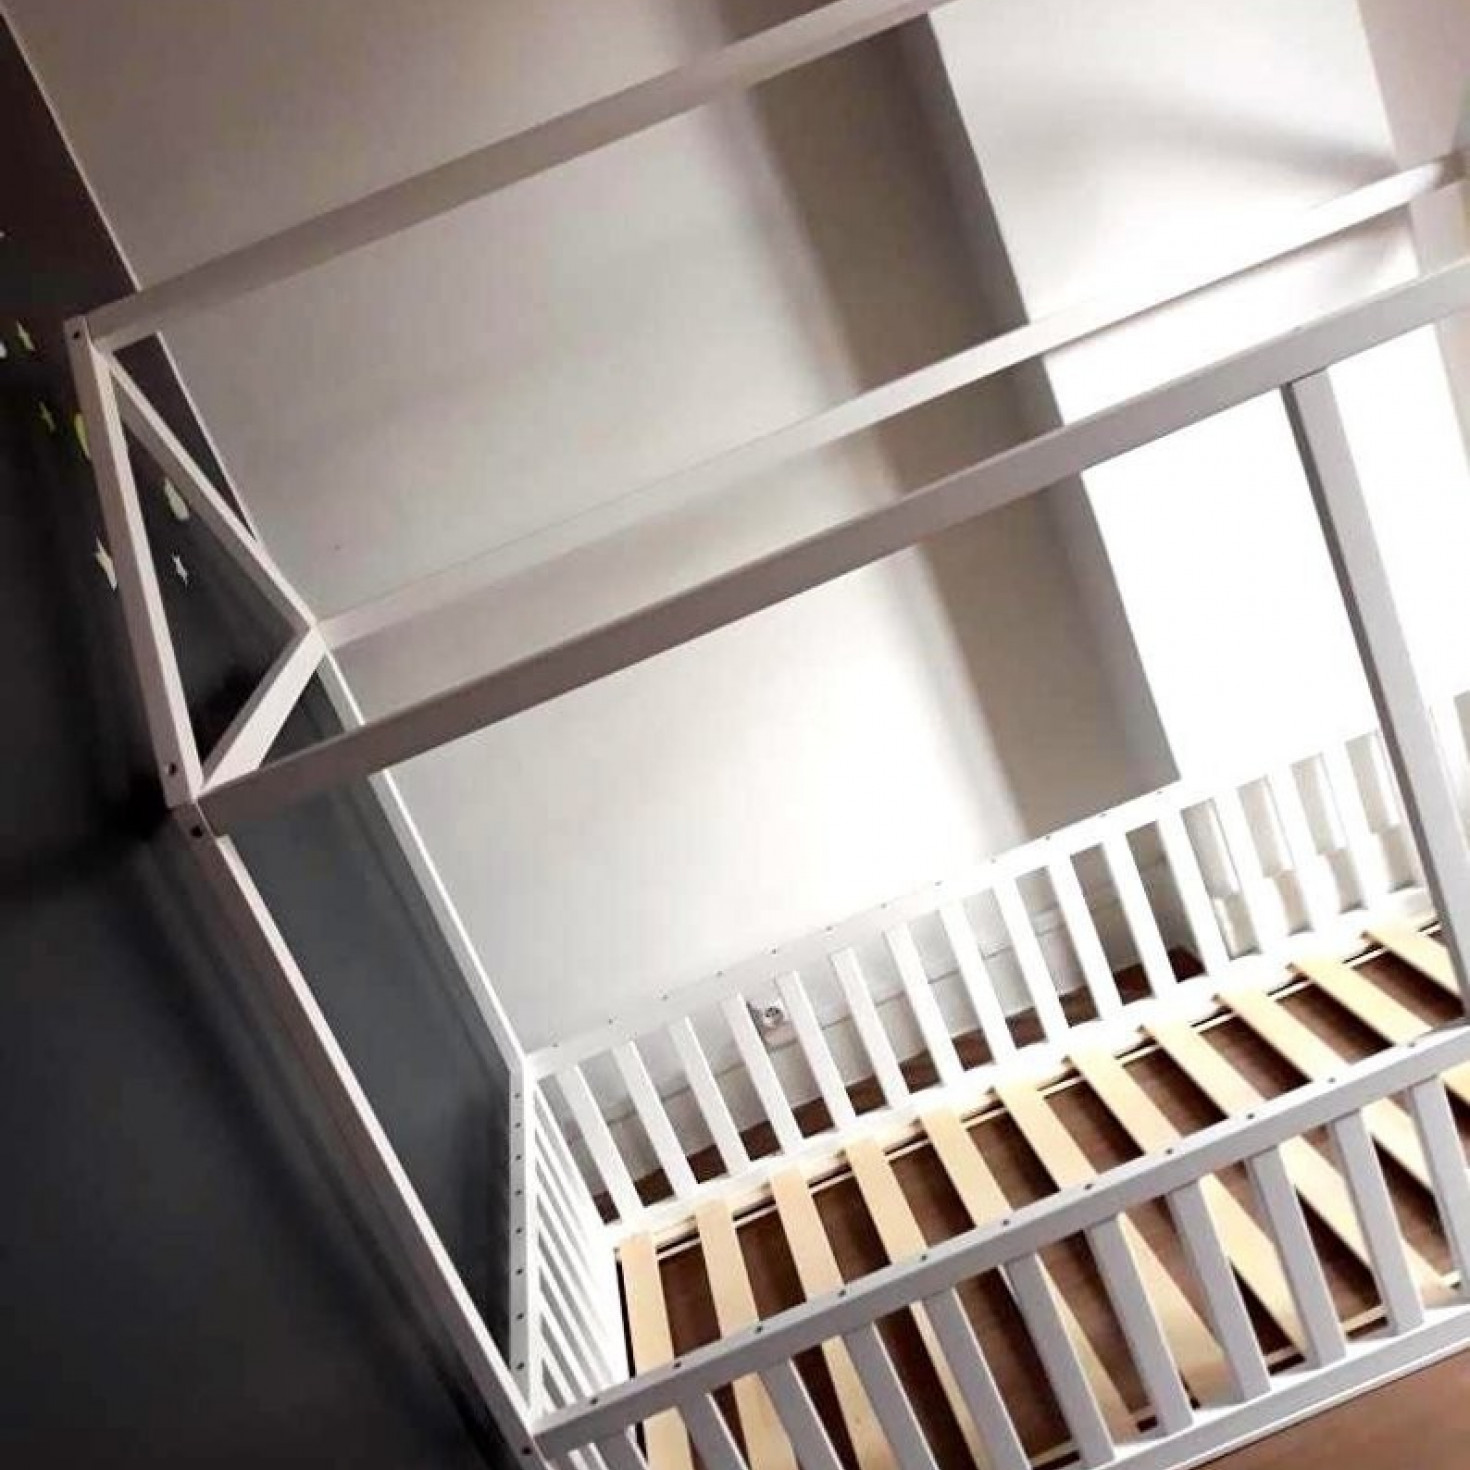 A toddler house bed frame with rails